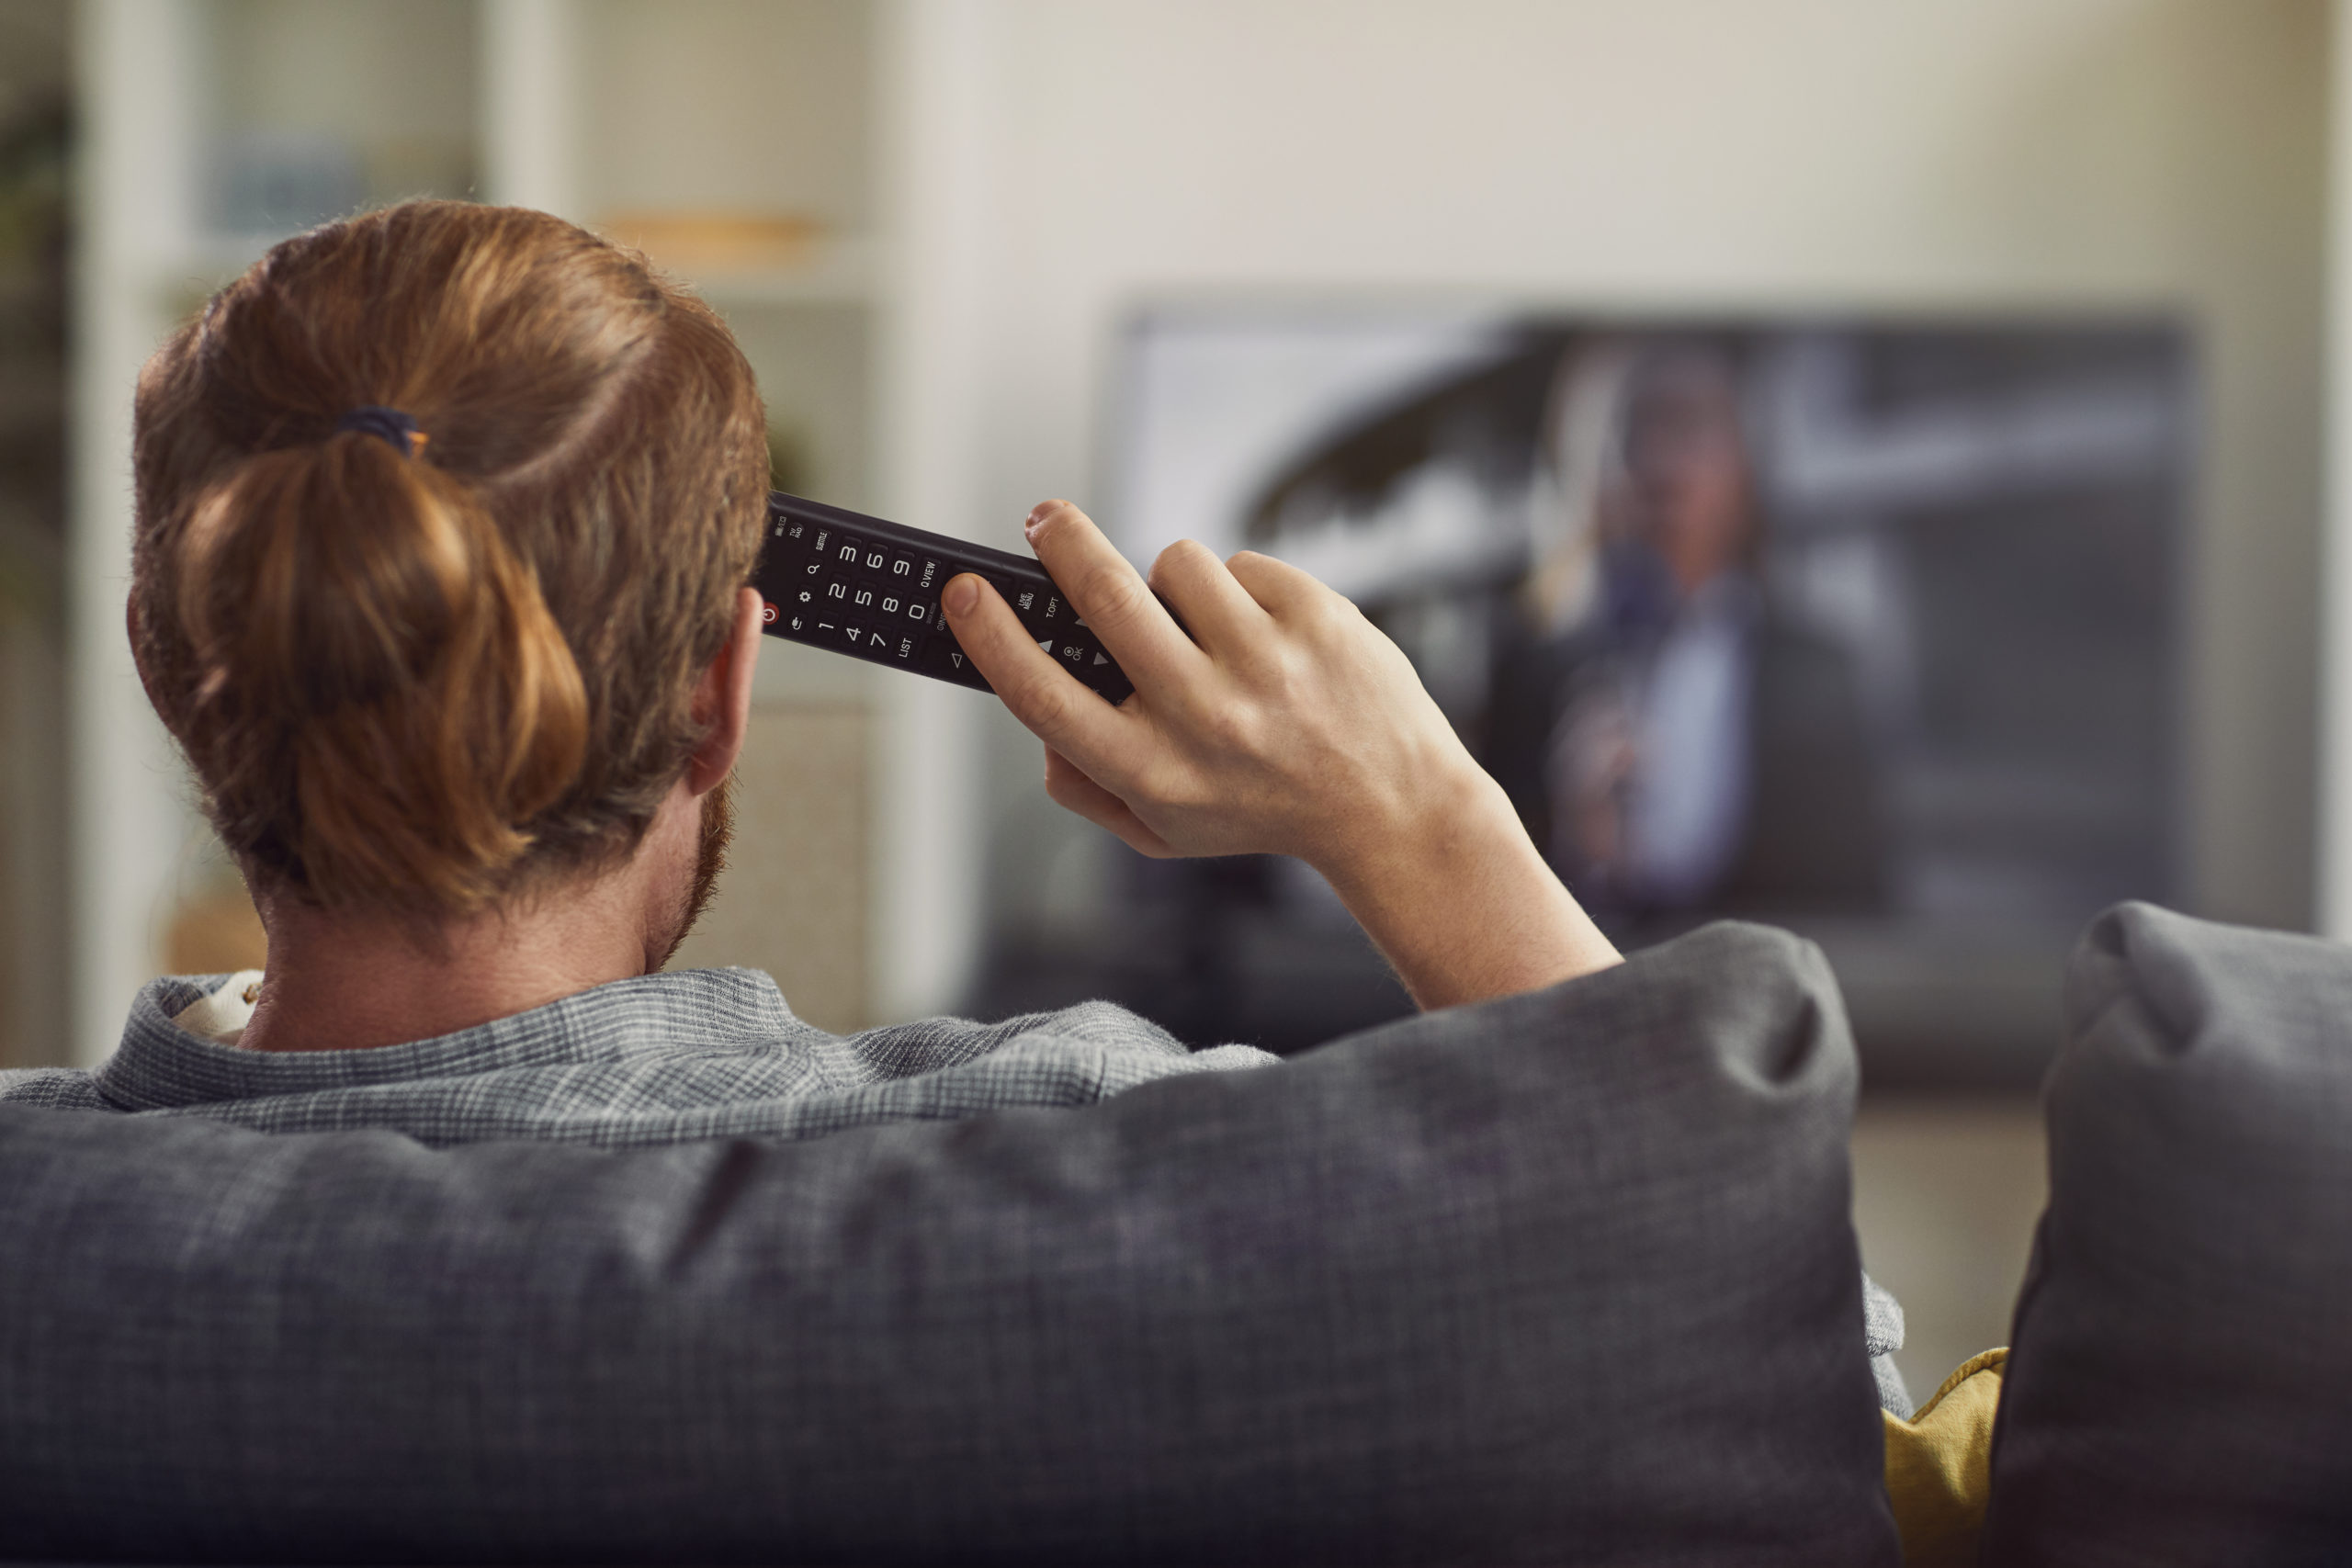 Having Humax Freeview tuning problems? Here's how to do ithttps://elements.envato.com/man-watching-tv-rear-view-UBANJ79